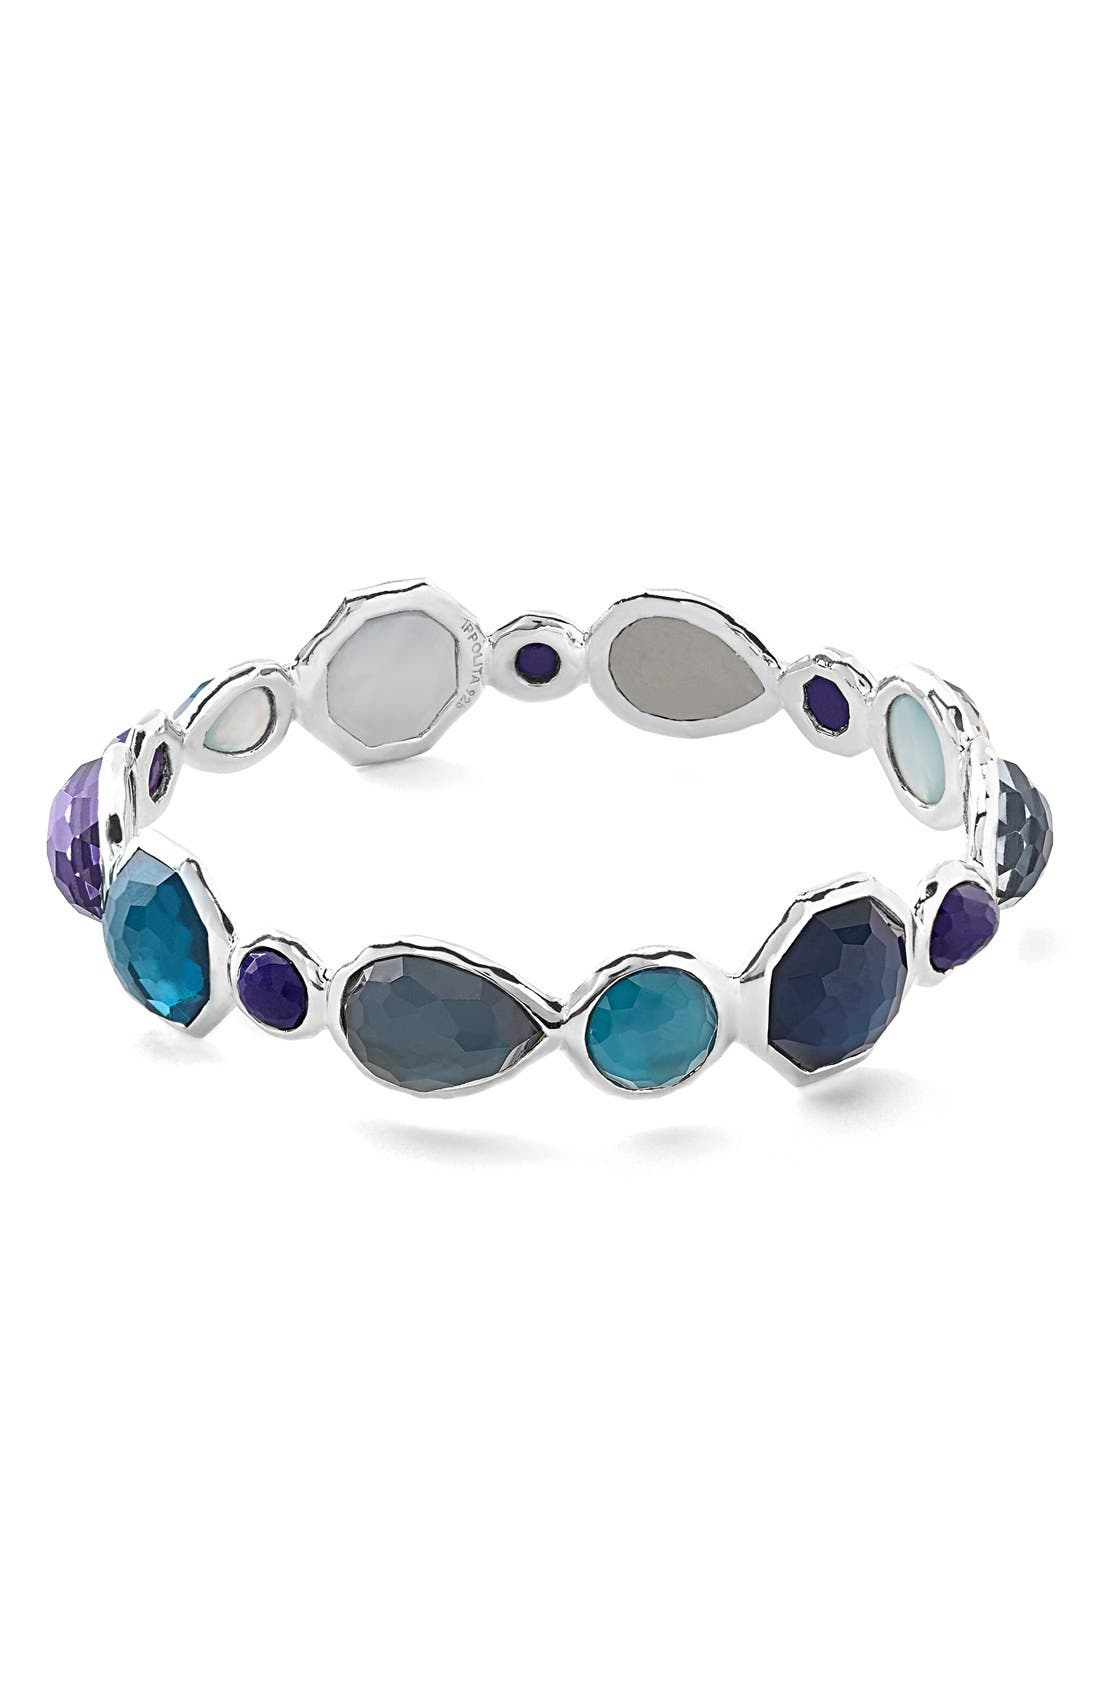 Main Image - Ippolita 'Wonderland - Mini Hero' Bangle